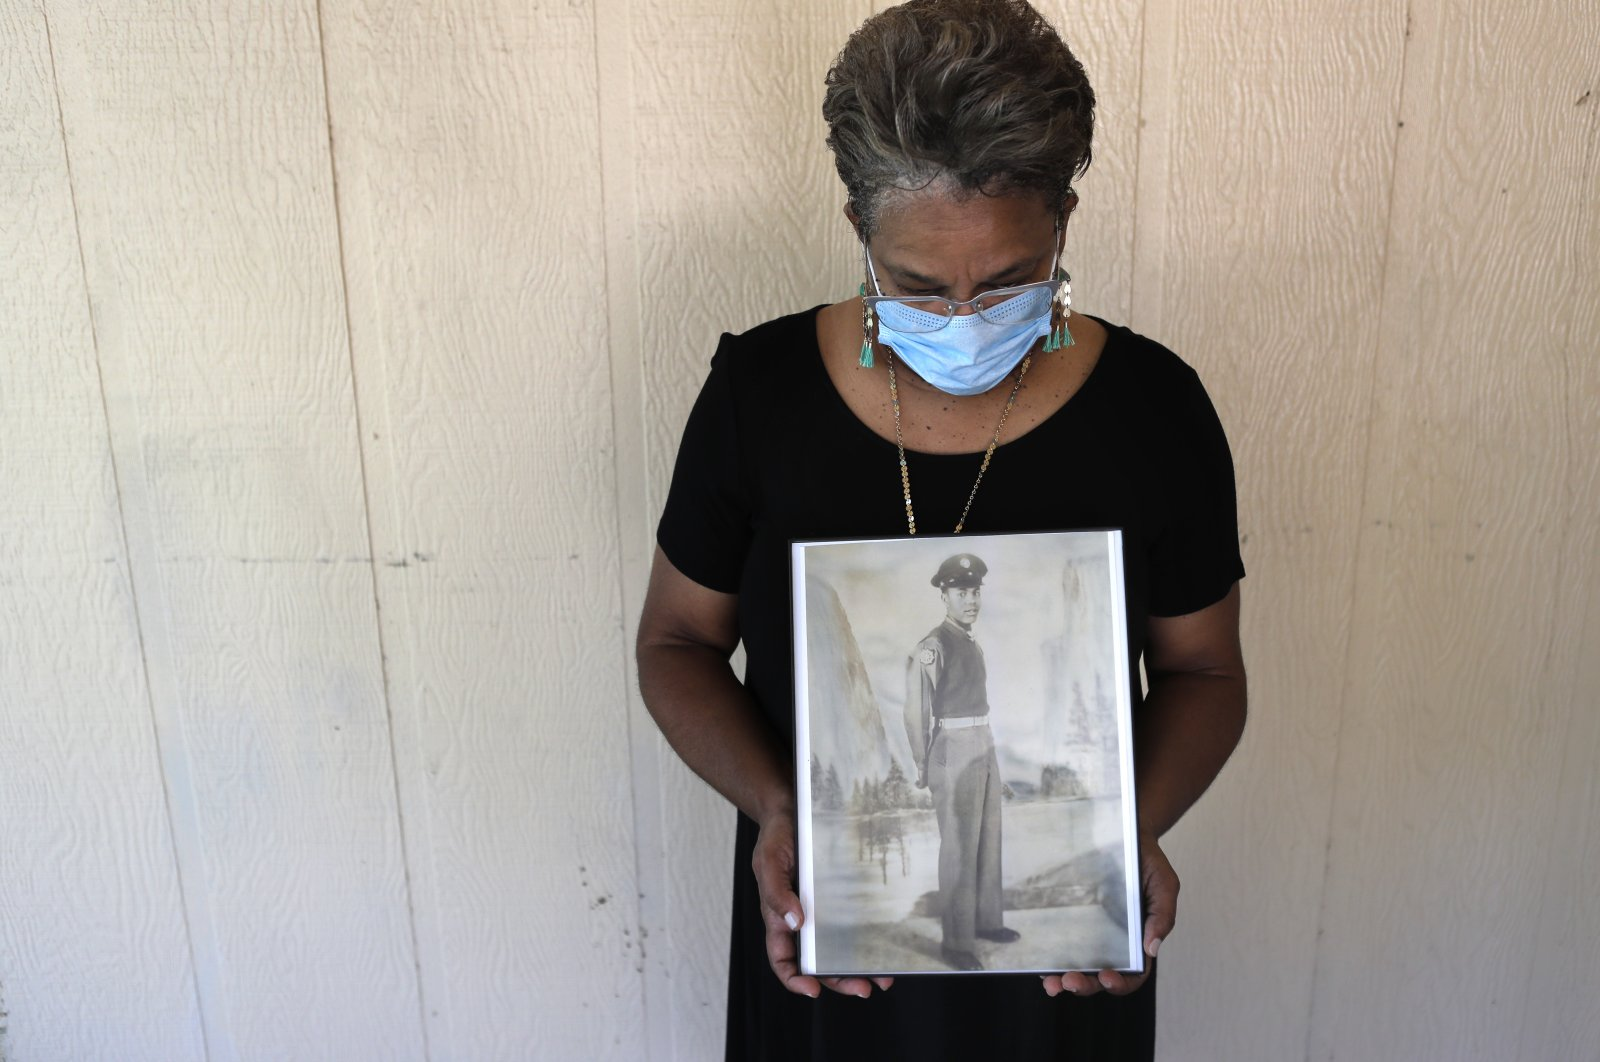 Belvin Jefferson White poses with a portrait of her father, Saymon Jefferson, who died of COVID-19, at Saymon's home in Baton Rouge, Louisana, U.S., May 18, 2020. (AP Photo)